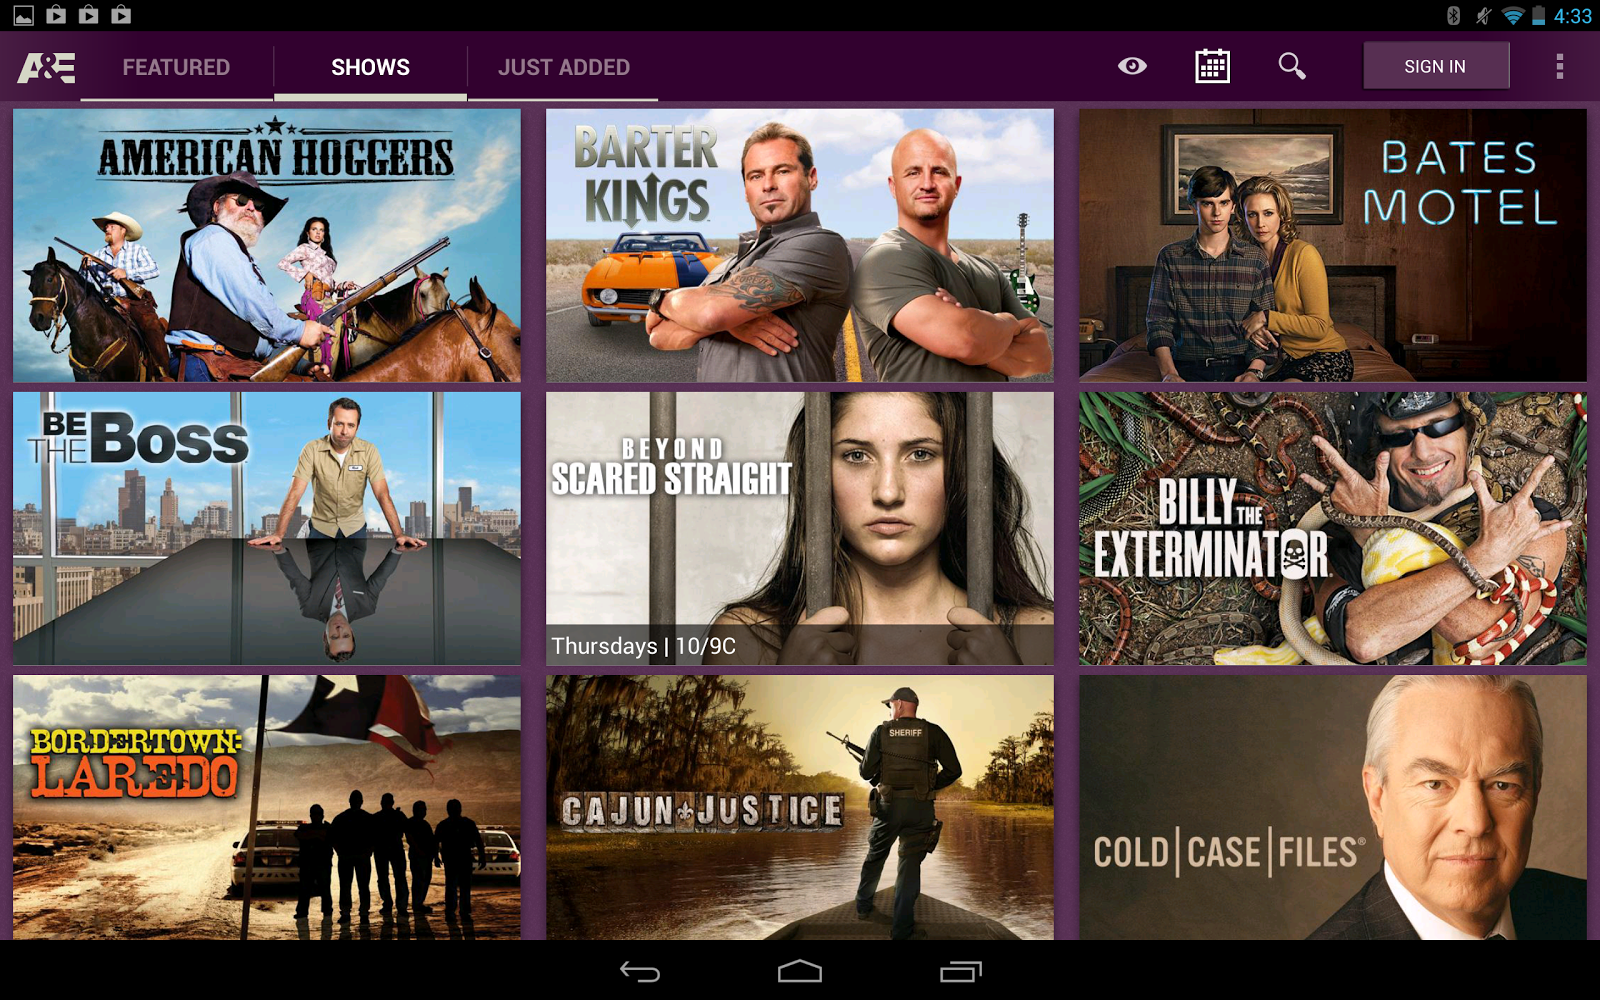 40 Best (And 1 WTF) New Android Apps And Live Wallpapers From The Last 2 Weeks (6/18/13 - 7/3/13)